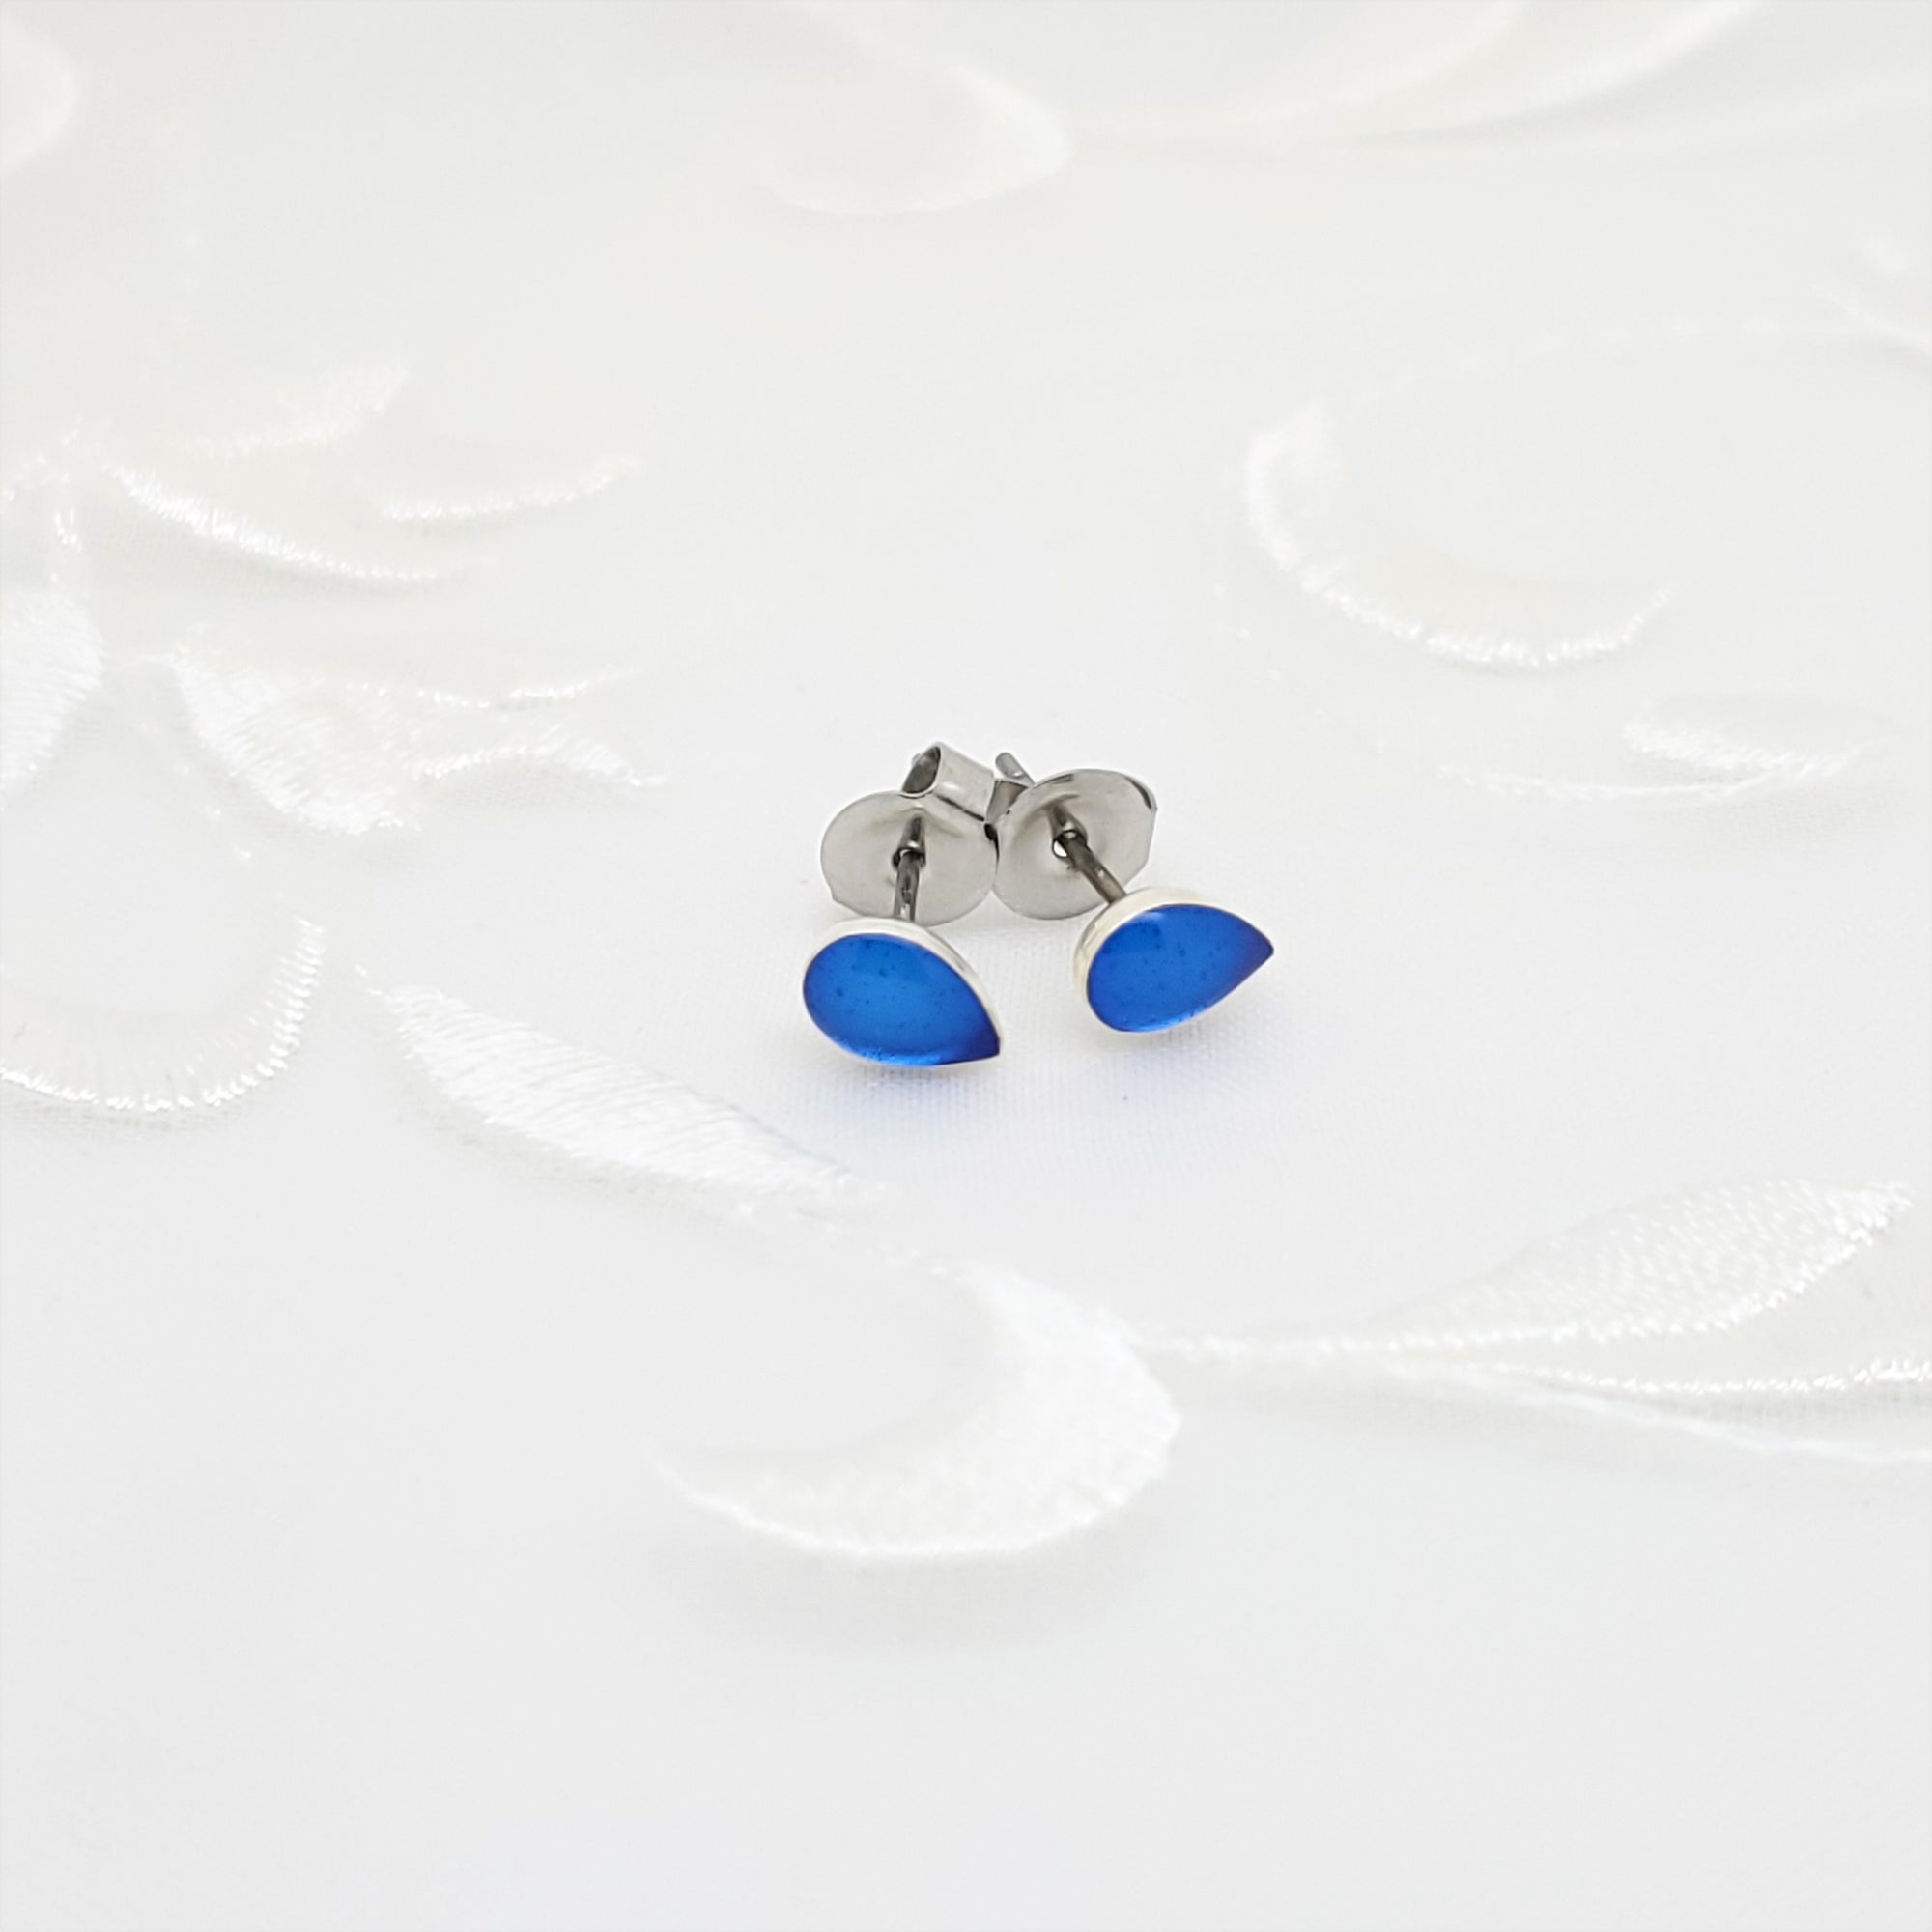 Antique Silver Drop Stud Earrings with Transparent Sapphire Blue Resin